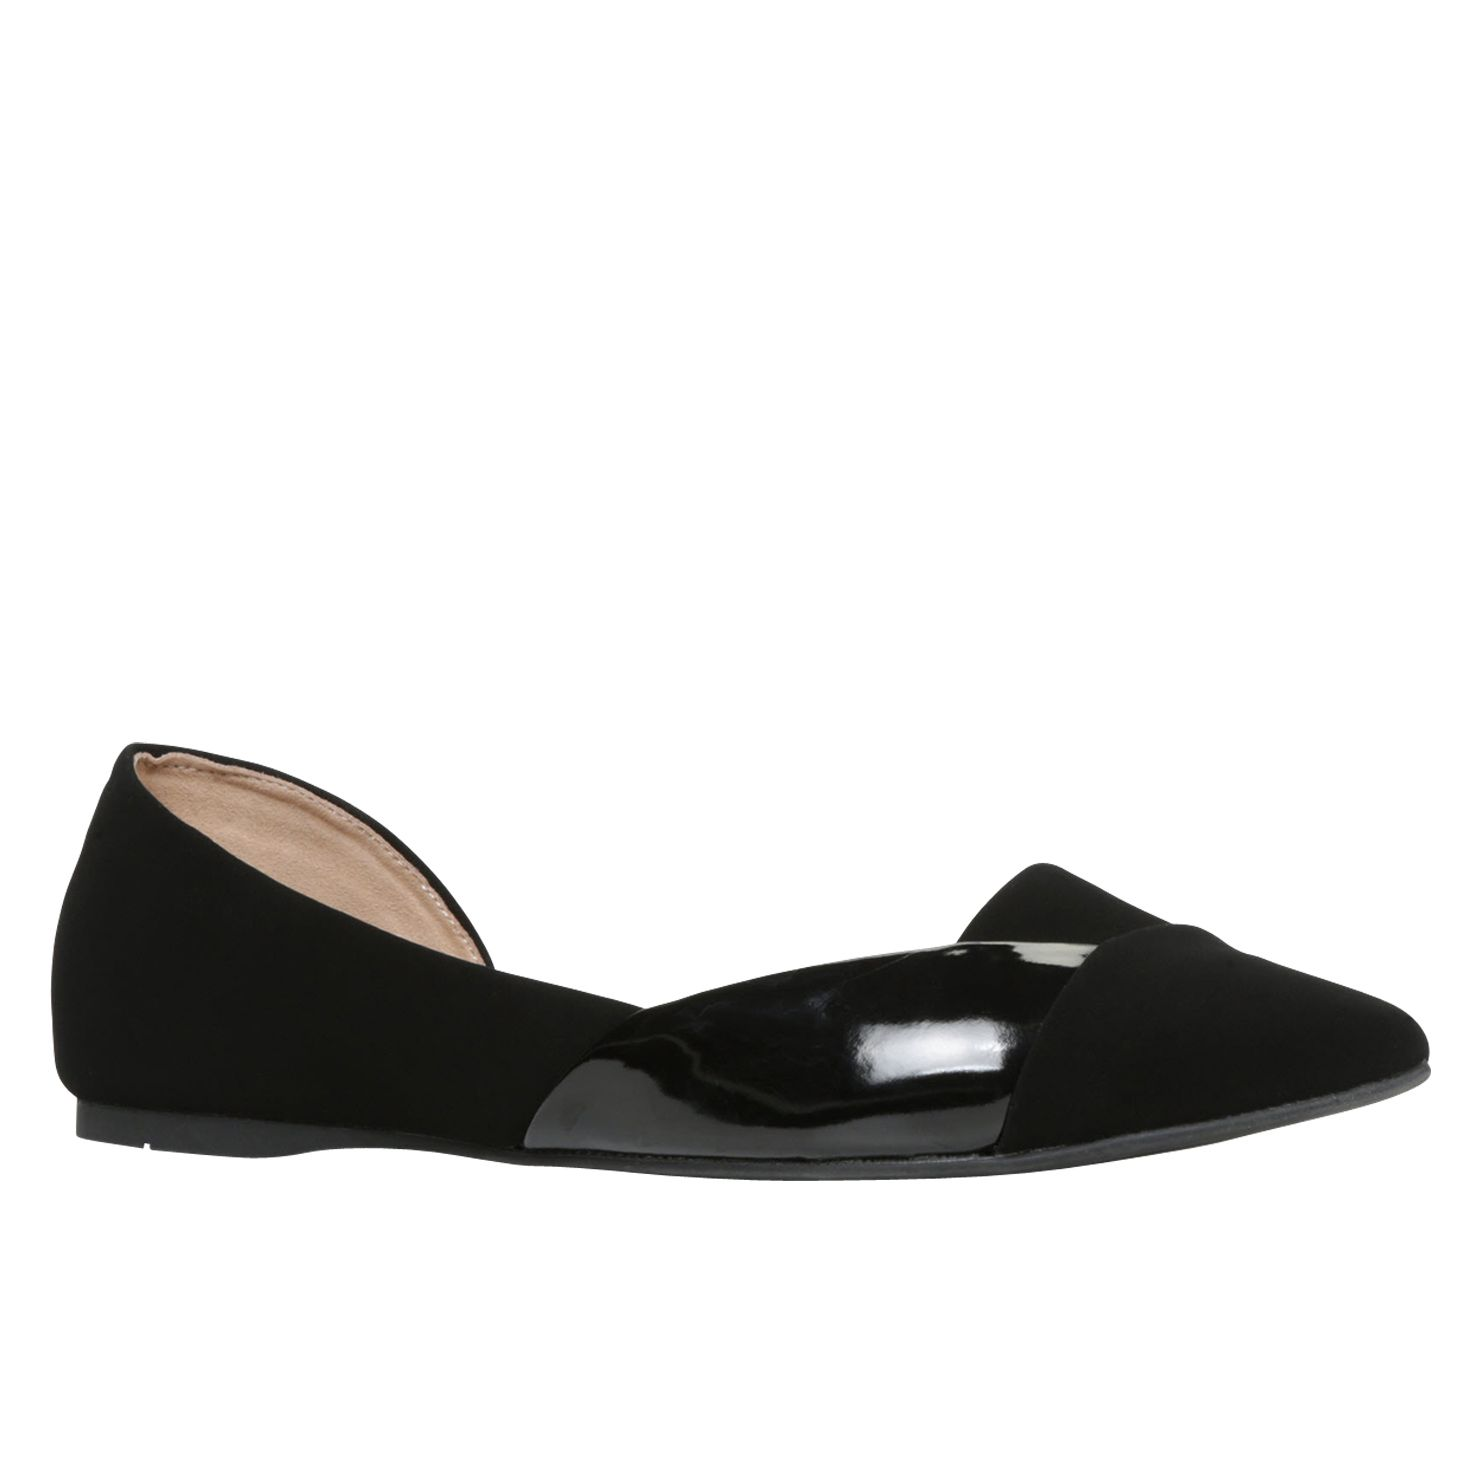 Zaci pointed toe ballerina shoes